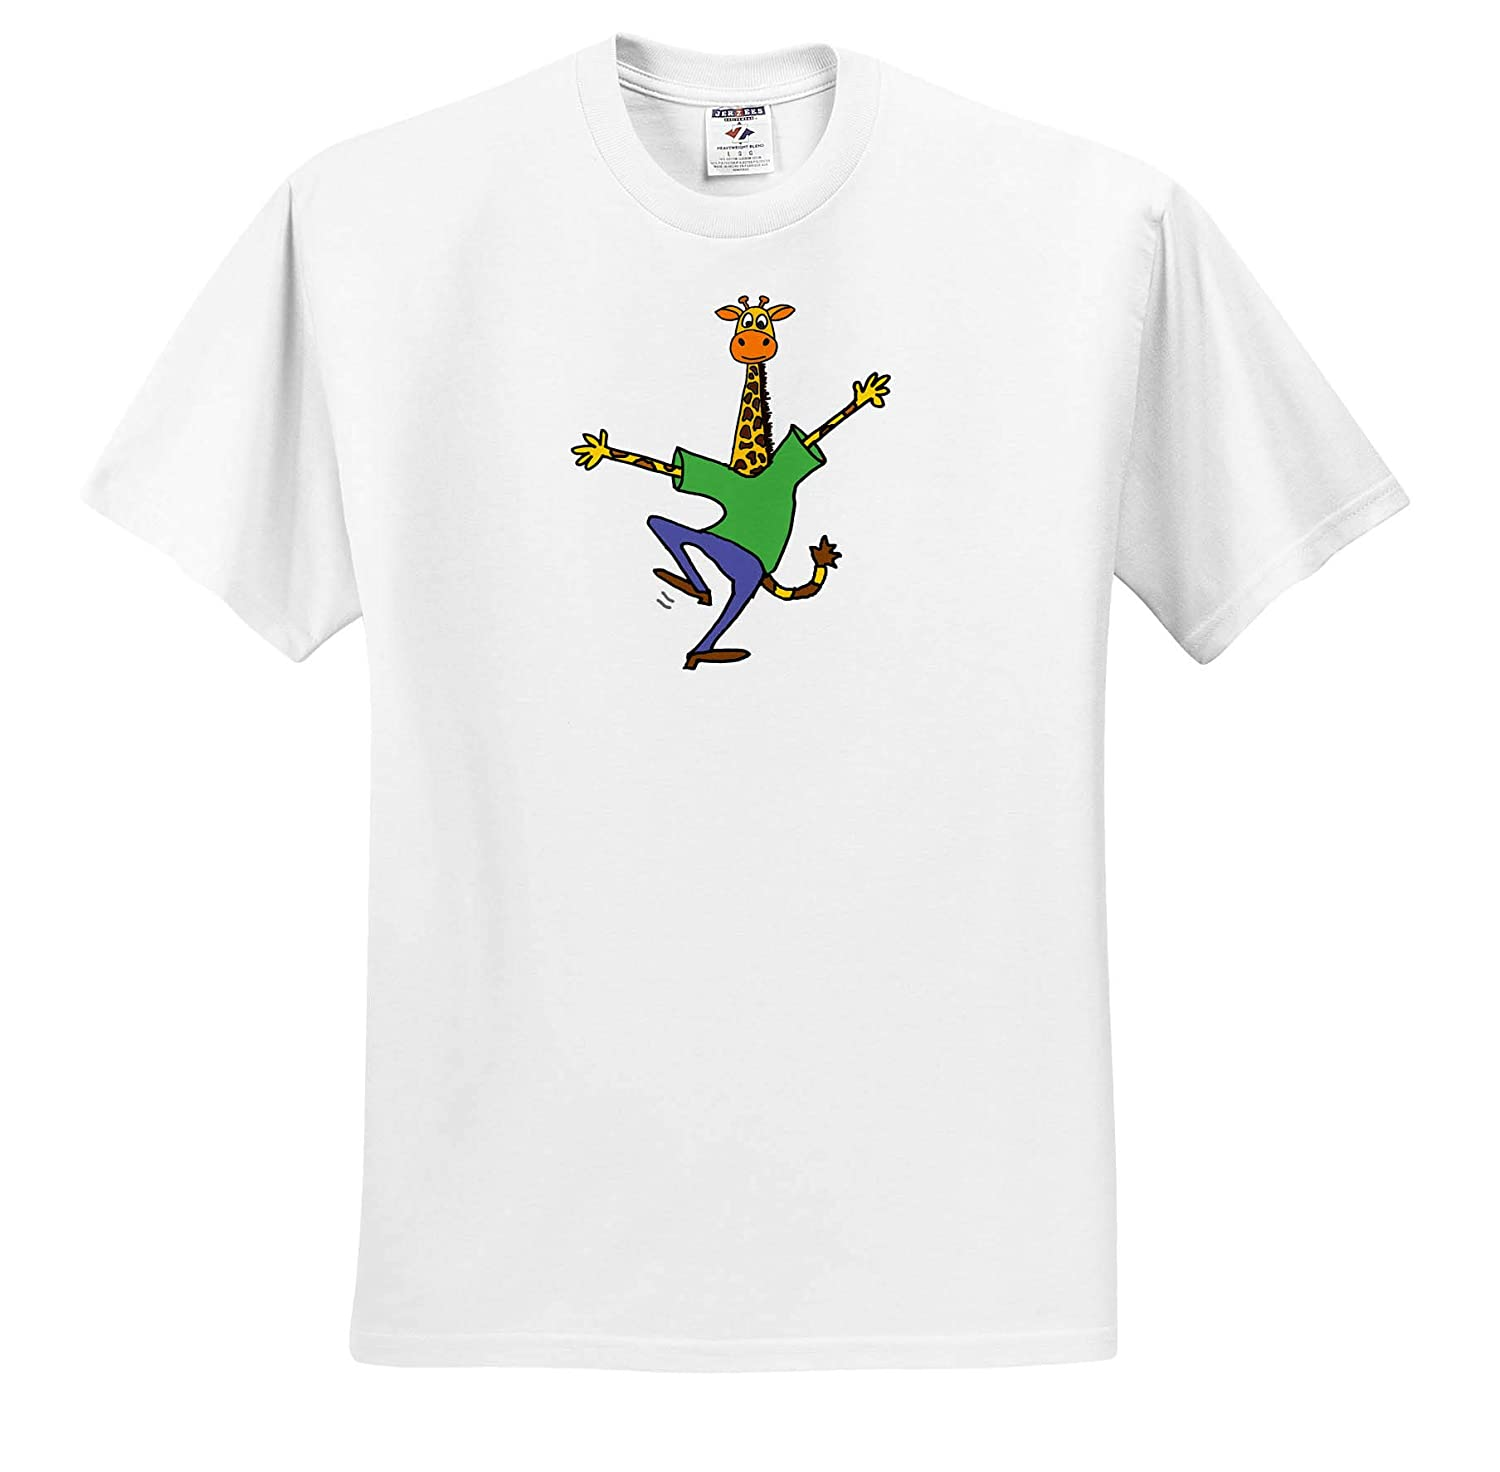 Adult T-Shirt XL ts/_319325 3dRose All Smiles Art Funny Cute Happy Giraffe Dancing Cartoon Funny